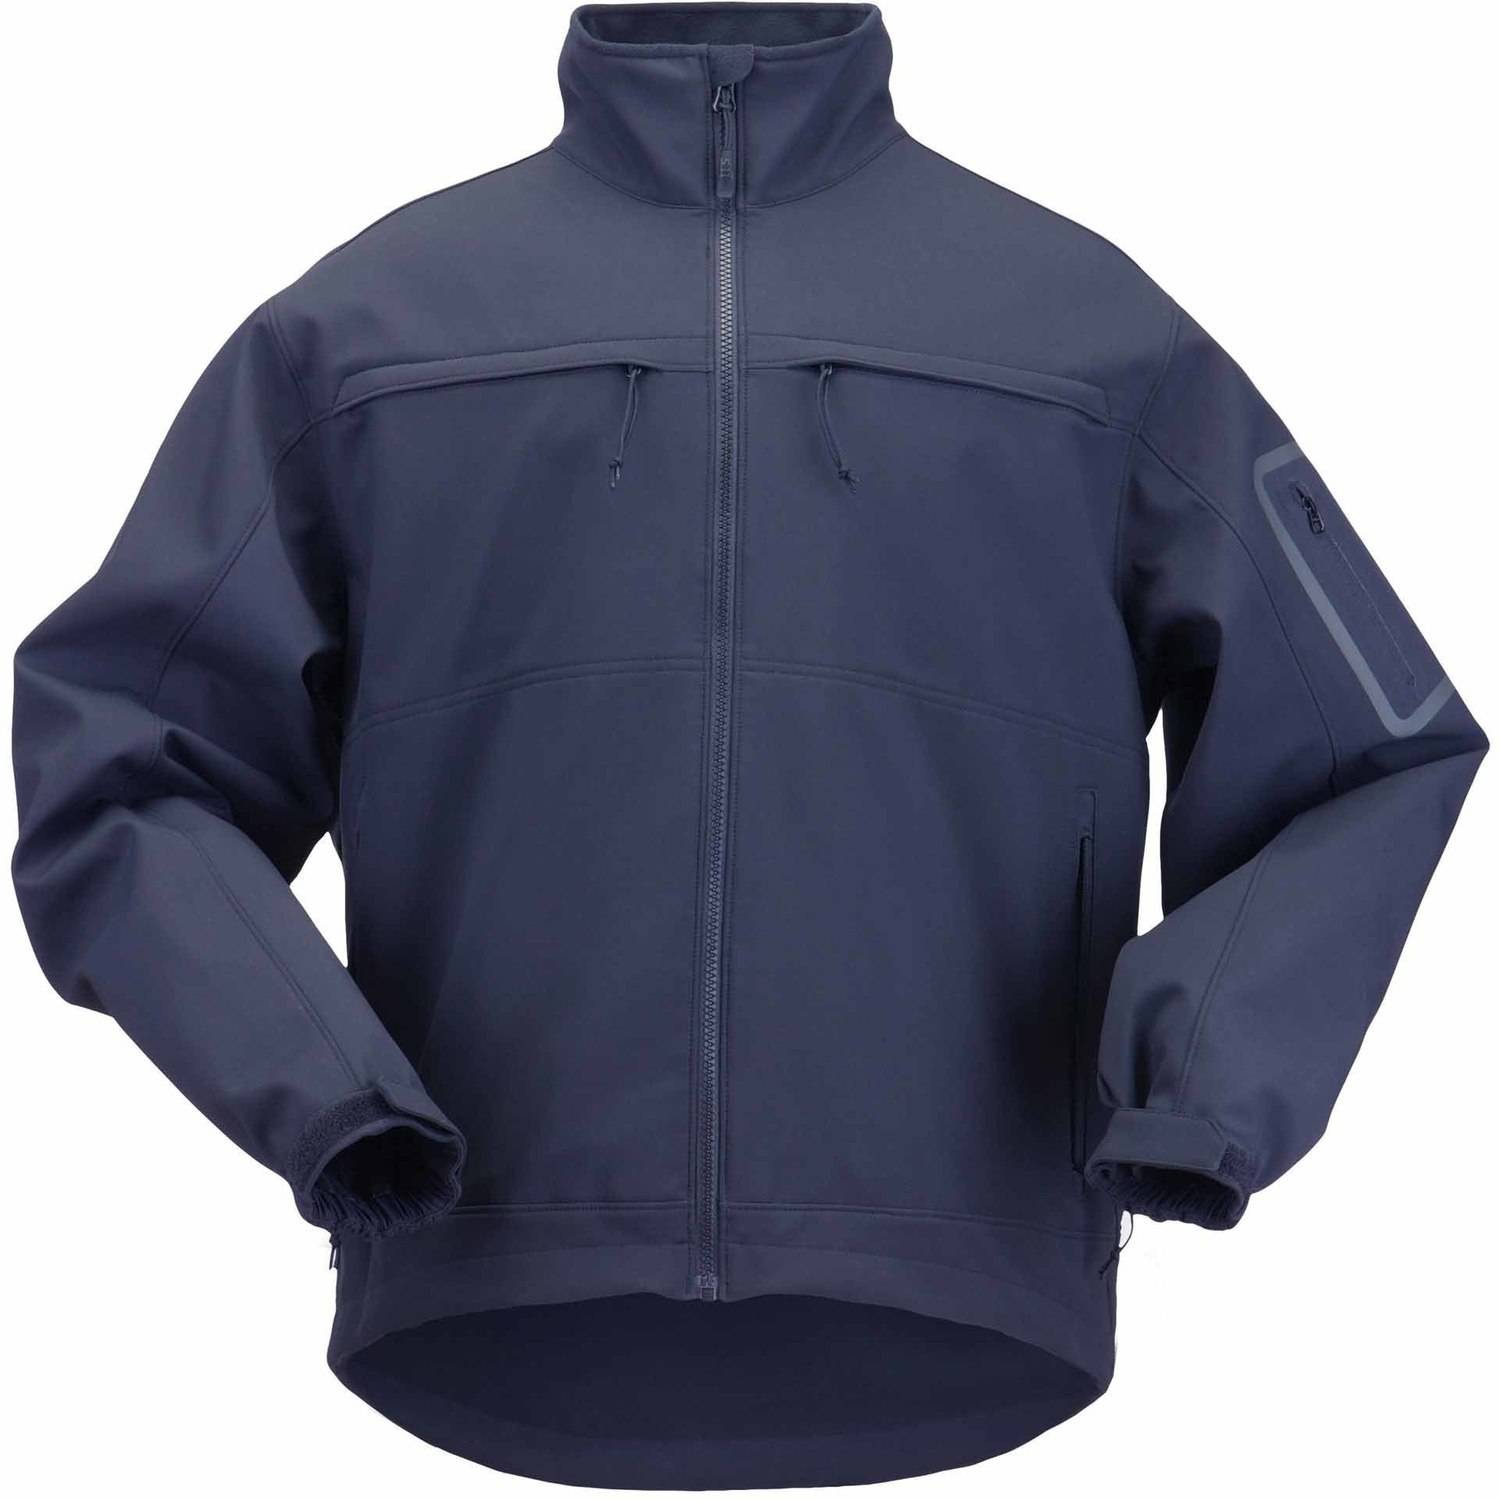 5.11 Tactical Chameleon Softshell Jacket, Dark Navy